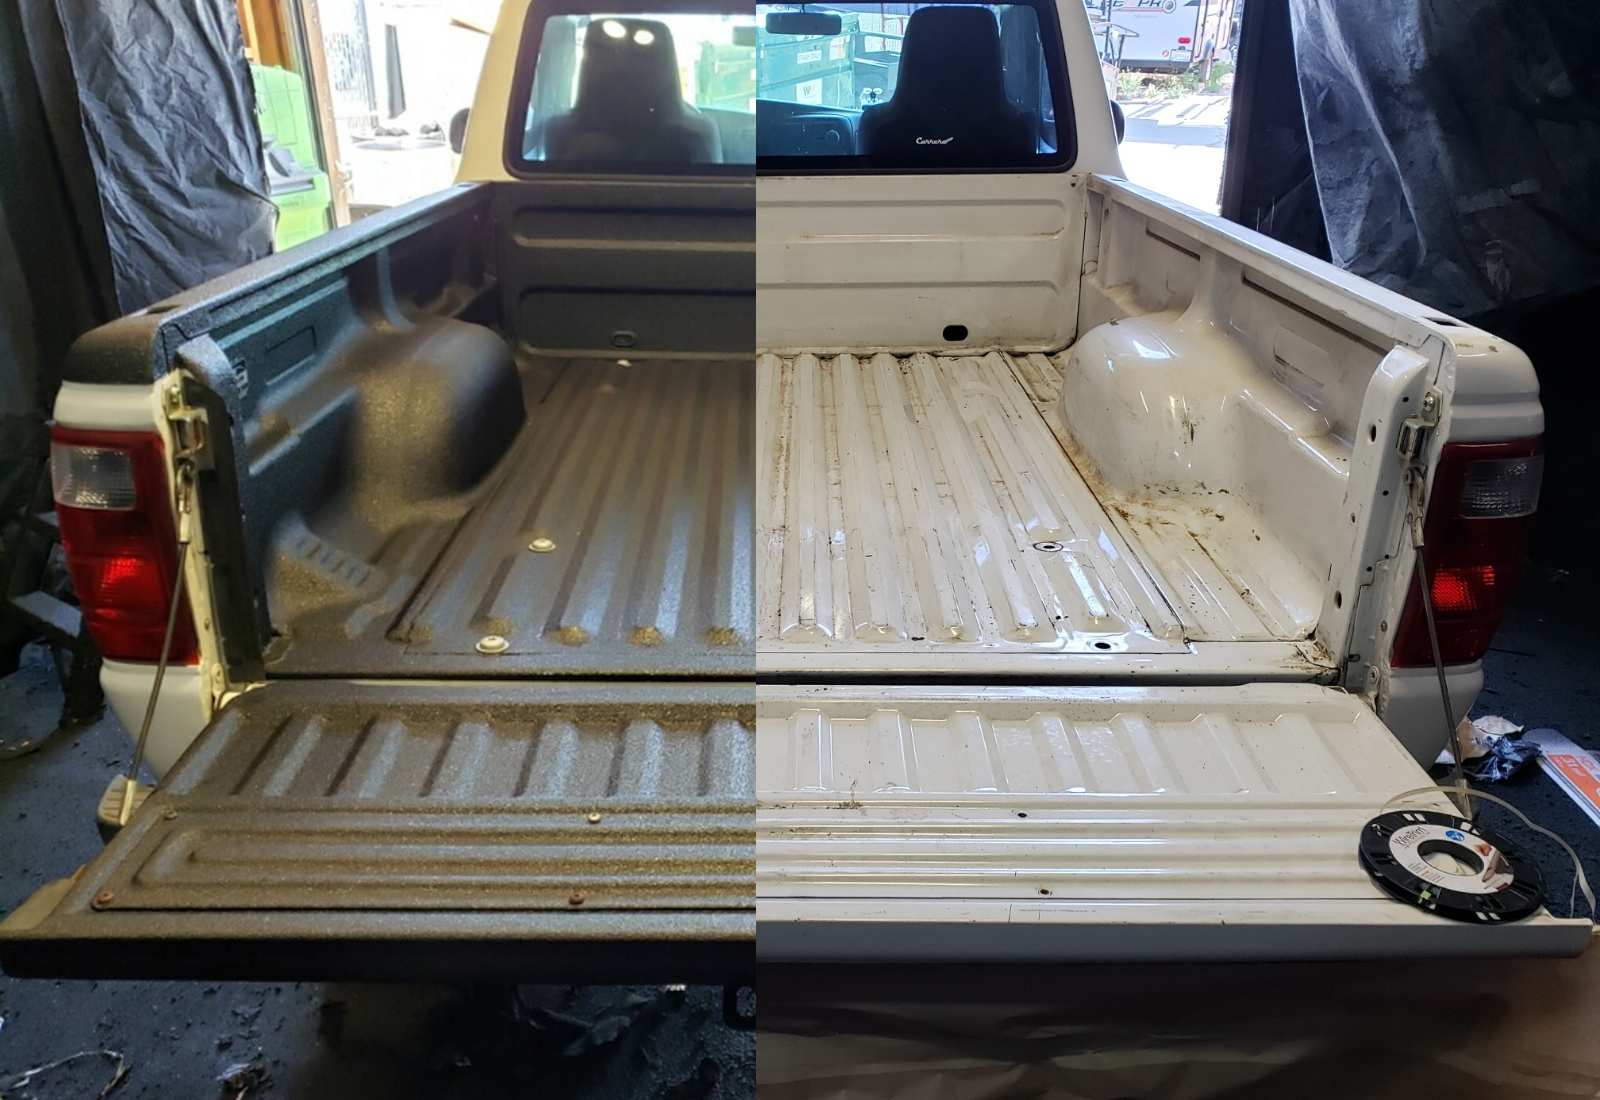 See the difference Bullet Liner protective spray liners makes for even an old vehicle like this Ford Ranger.